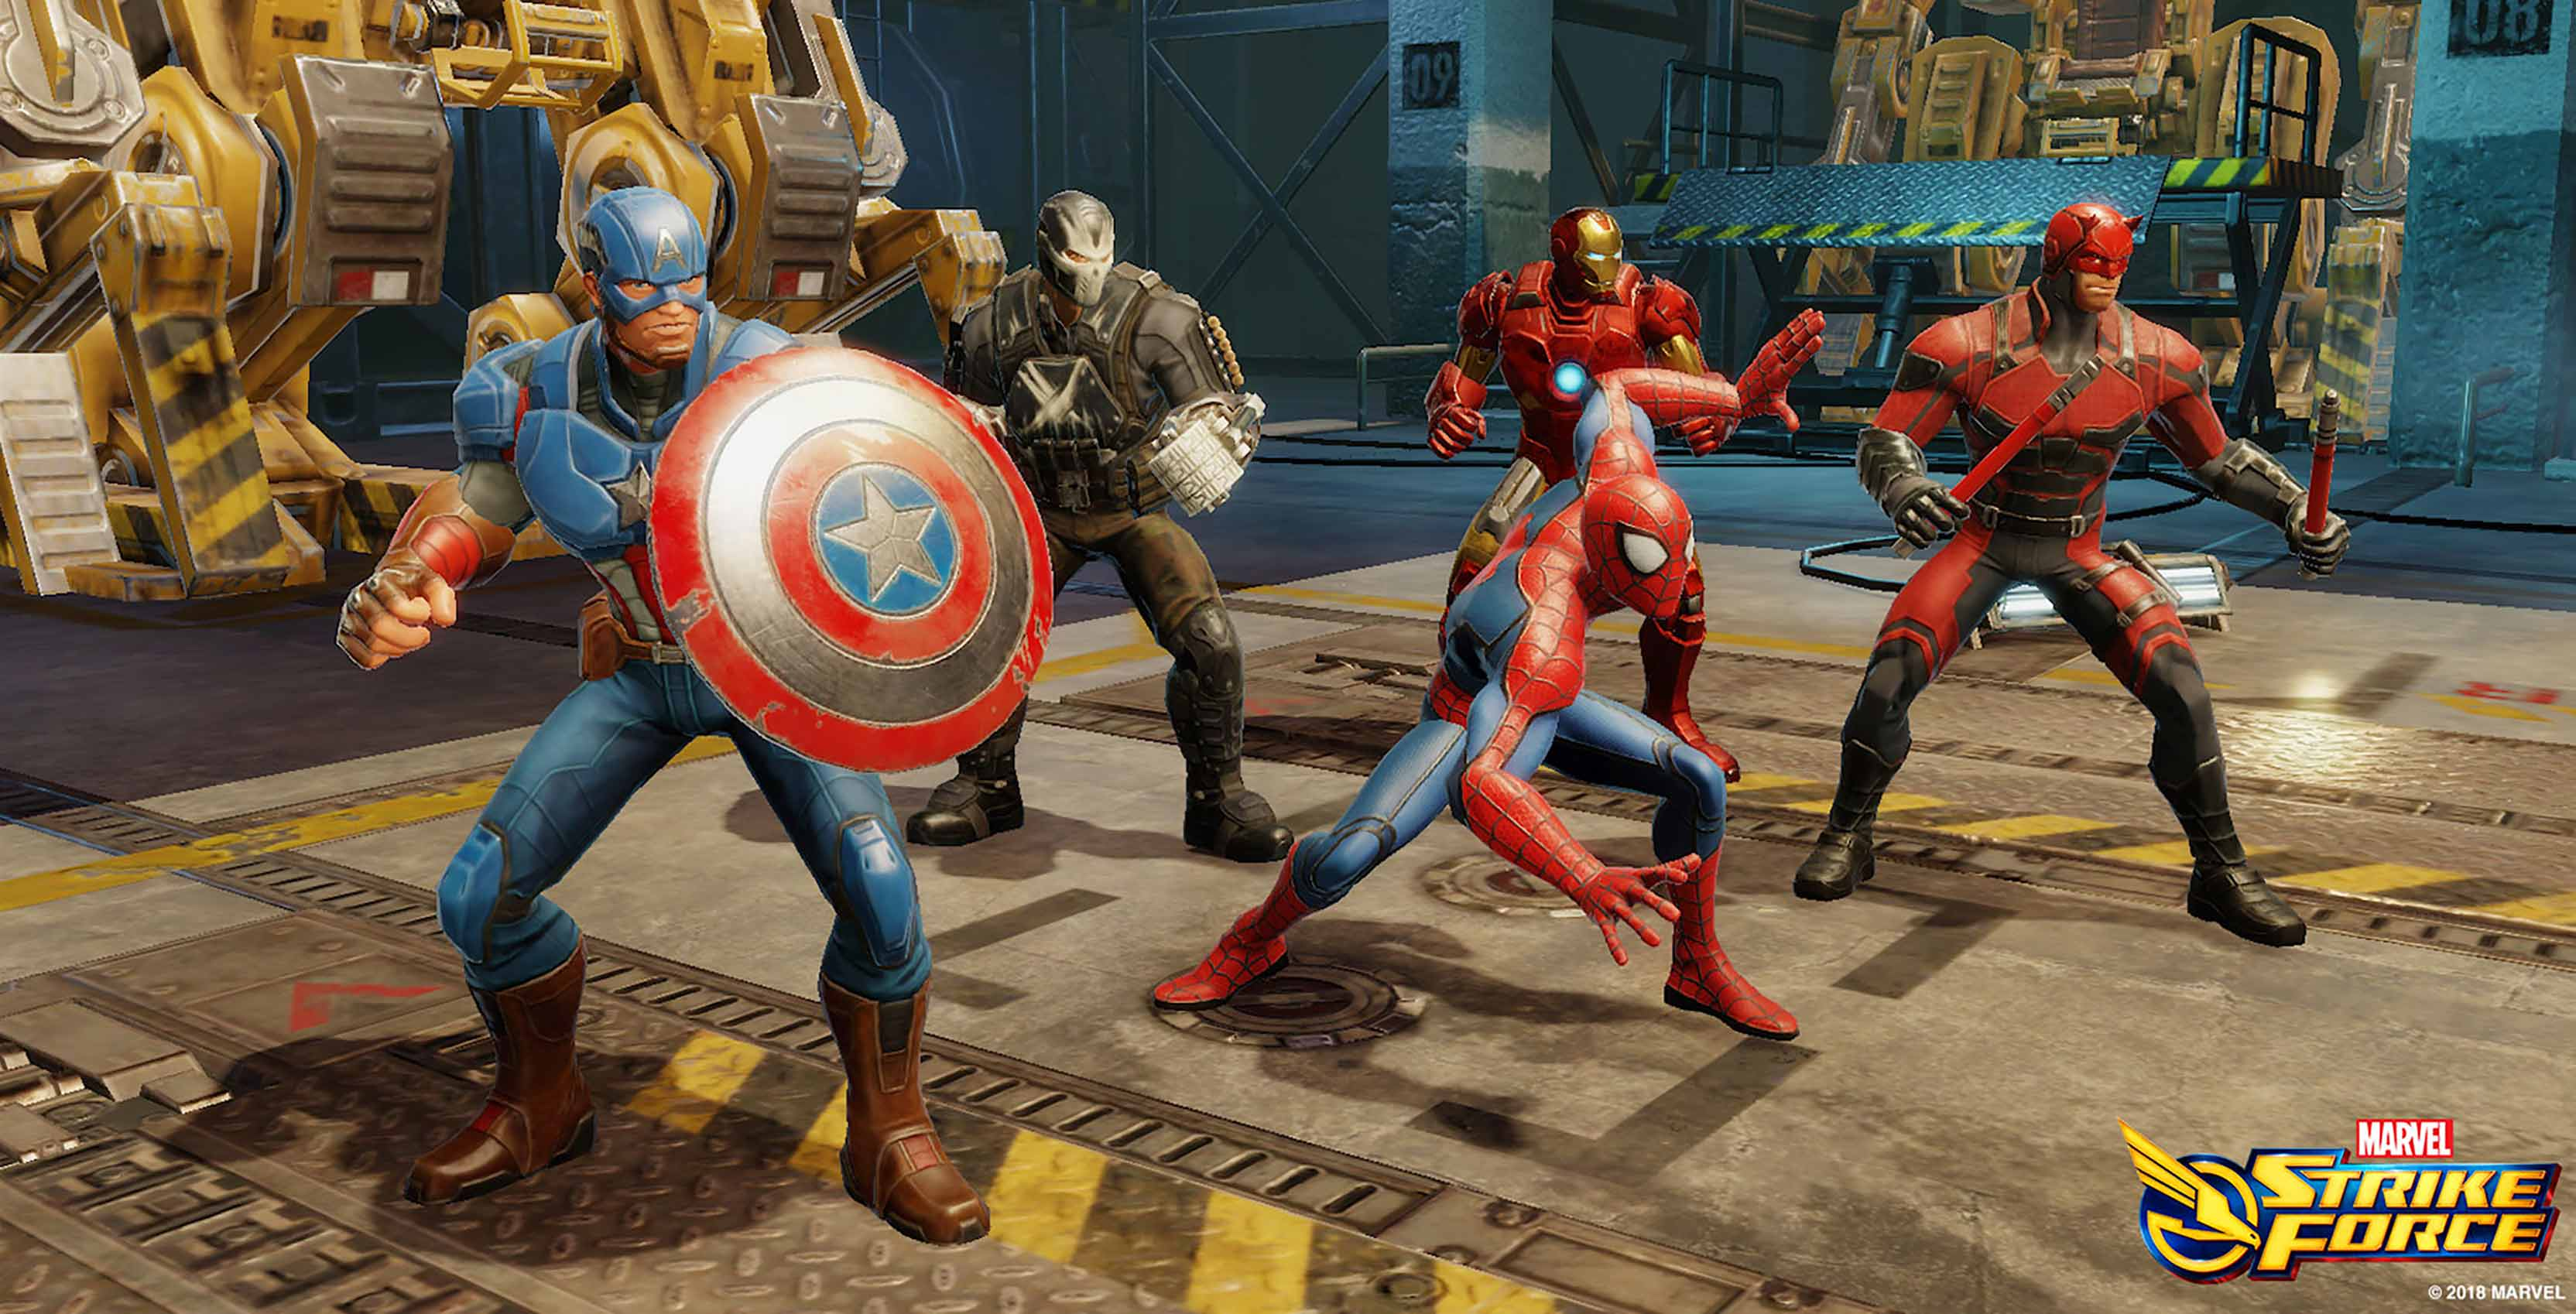 Marvel Strike Force is out right now on Android